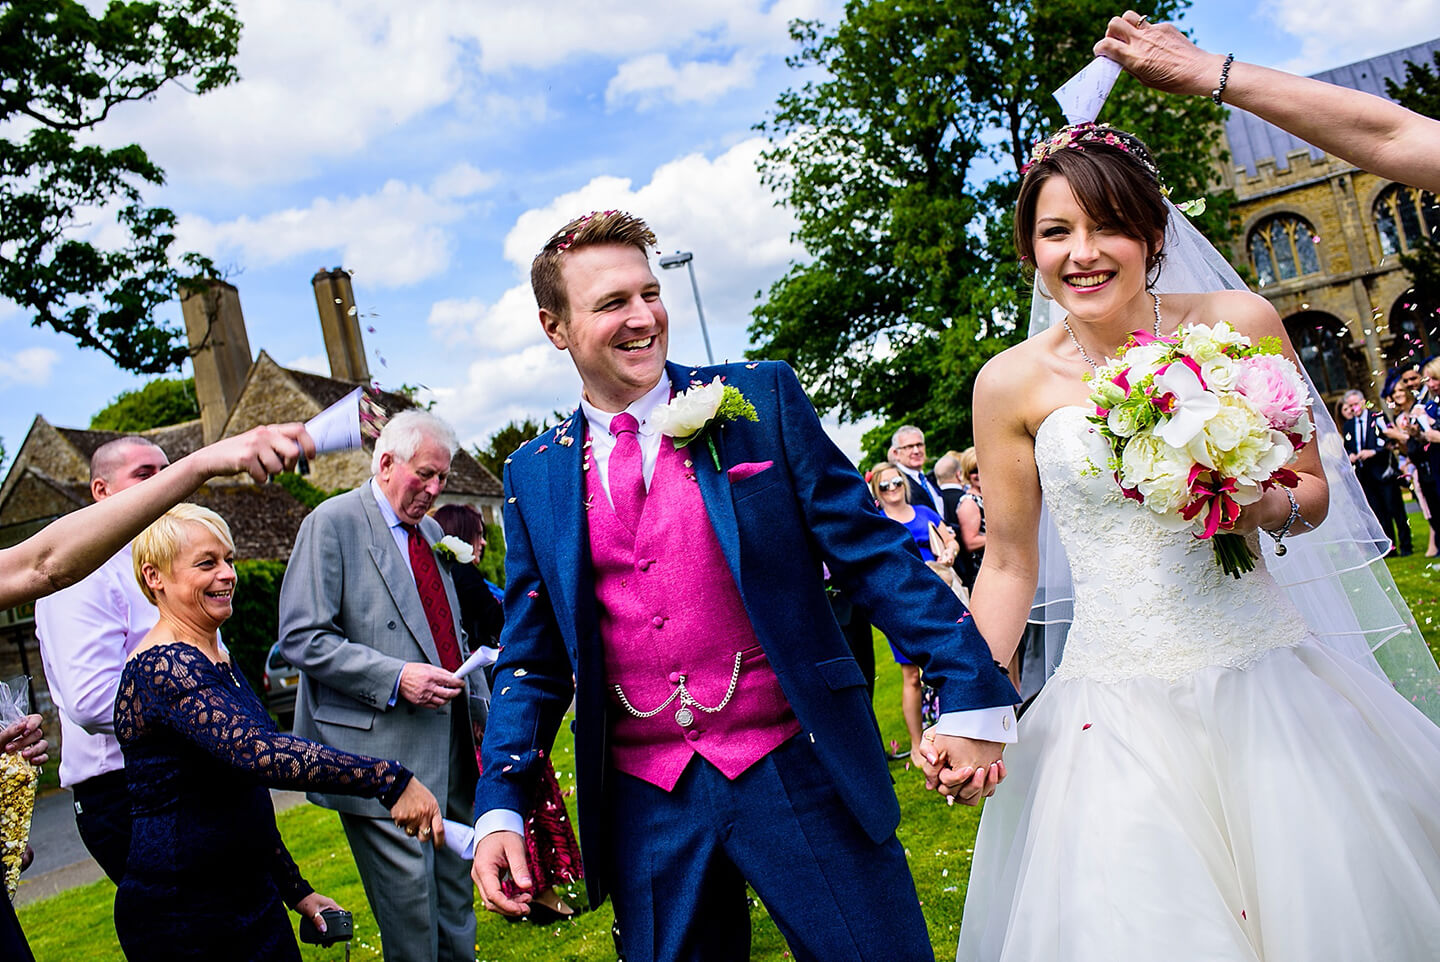 Guests throw wedding confetti as the happy newlyweds leave the church